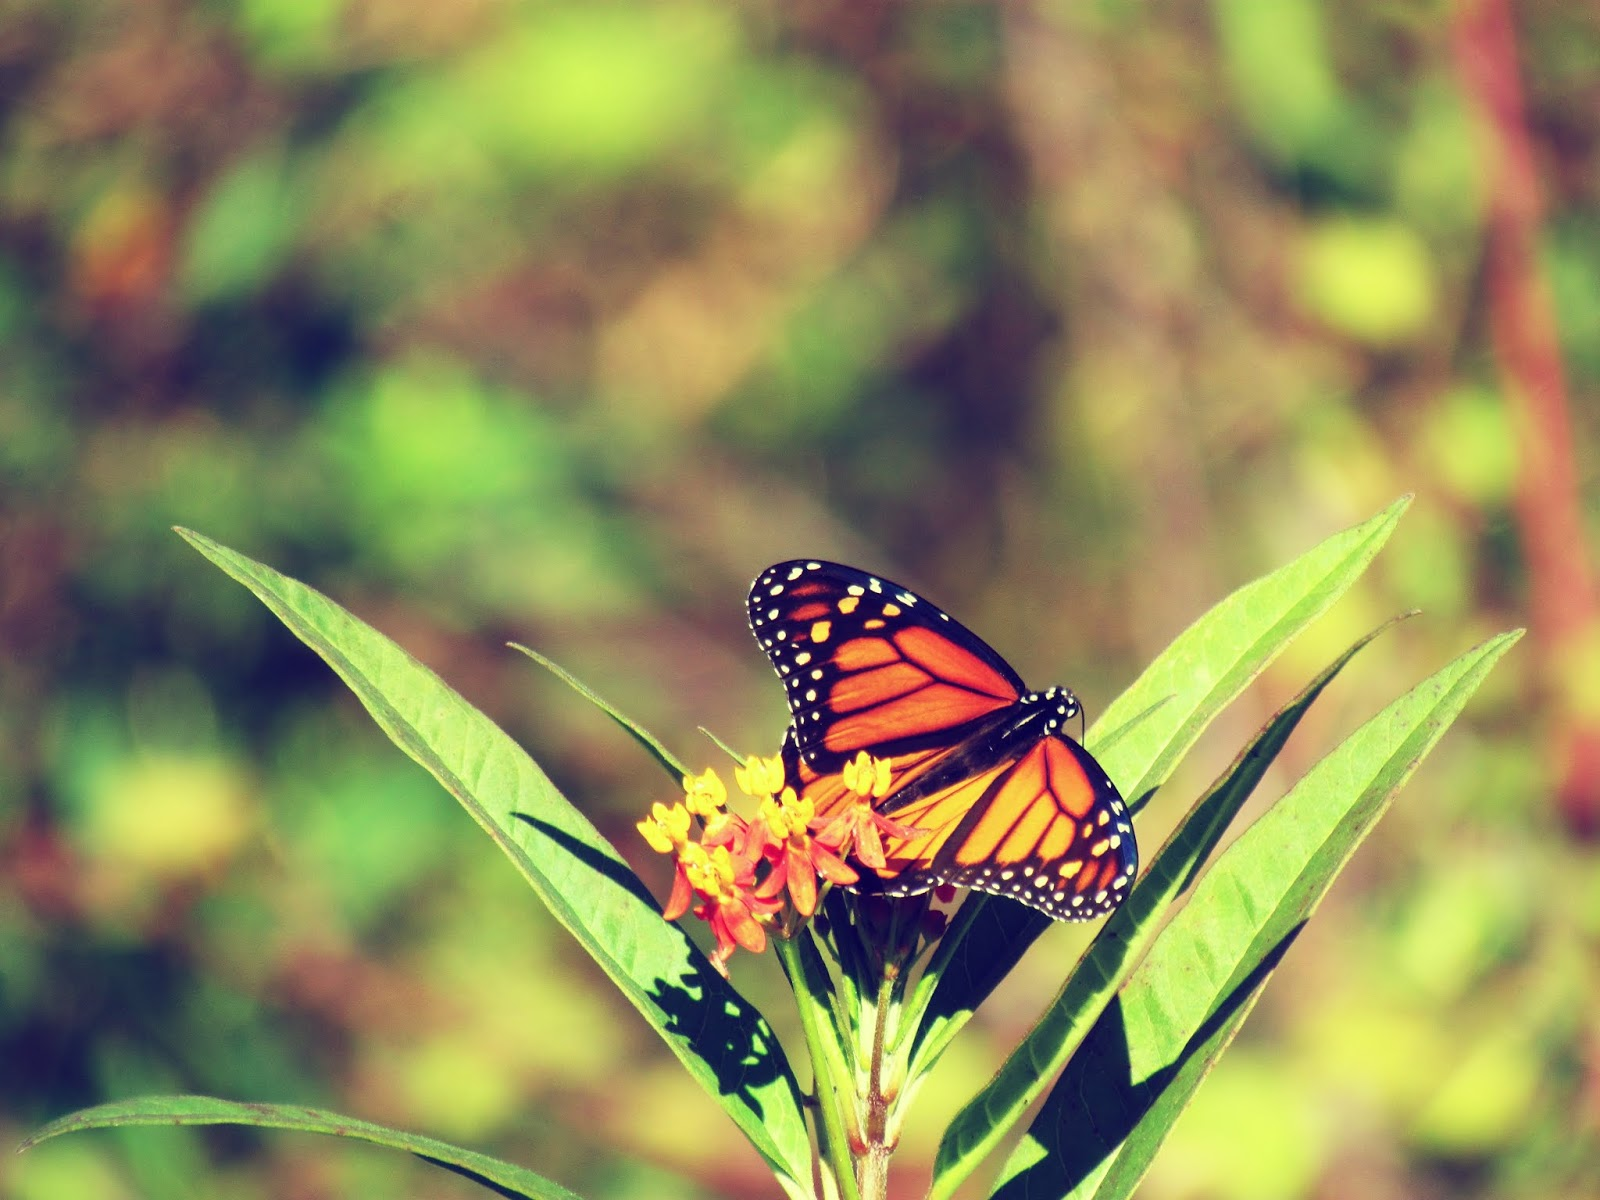 Magical, mystical butterfly creature on a fairy flower plant in Florida